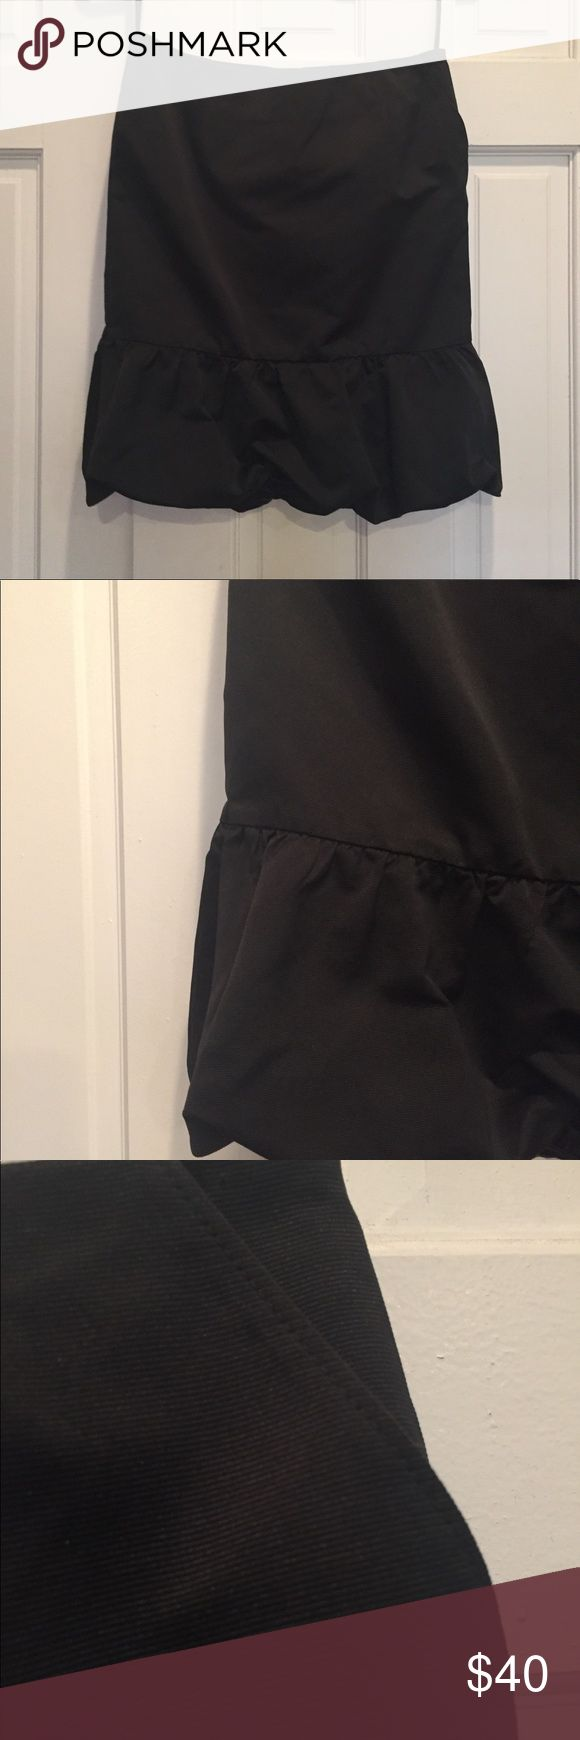 Club Monaco Skirt Black Club Monaco skirt. Slim, pencil fit. 2 pockets (pictured) Ruffled bottom. Perfect for holiday parties. Gently worn once. Purchased in NYC Soho location. Club Monaco Skirts Pencil